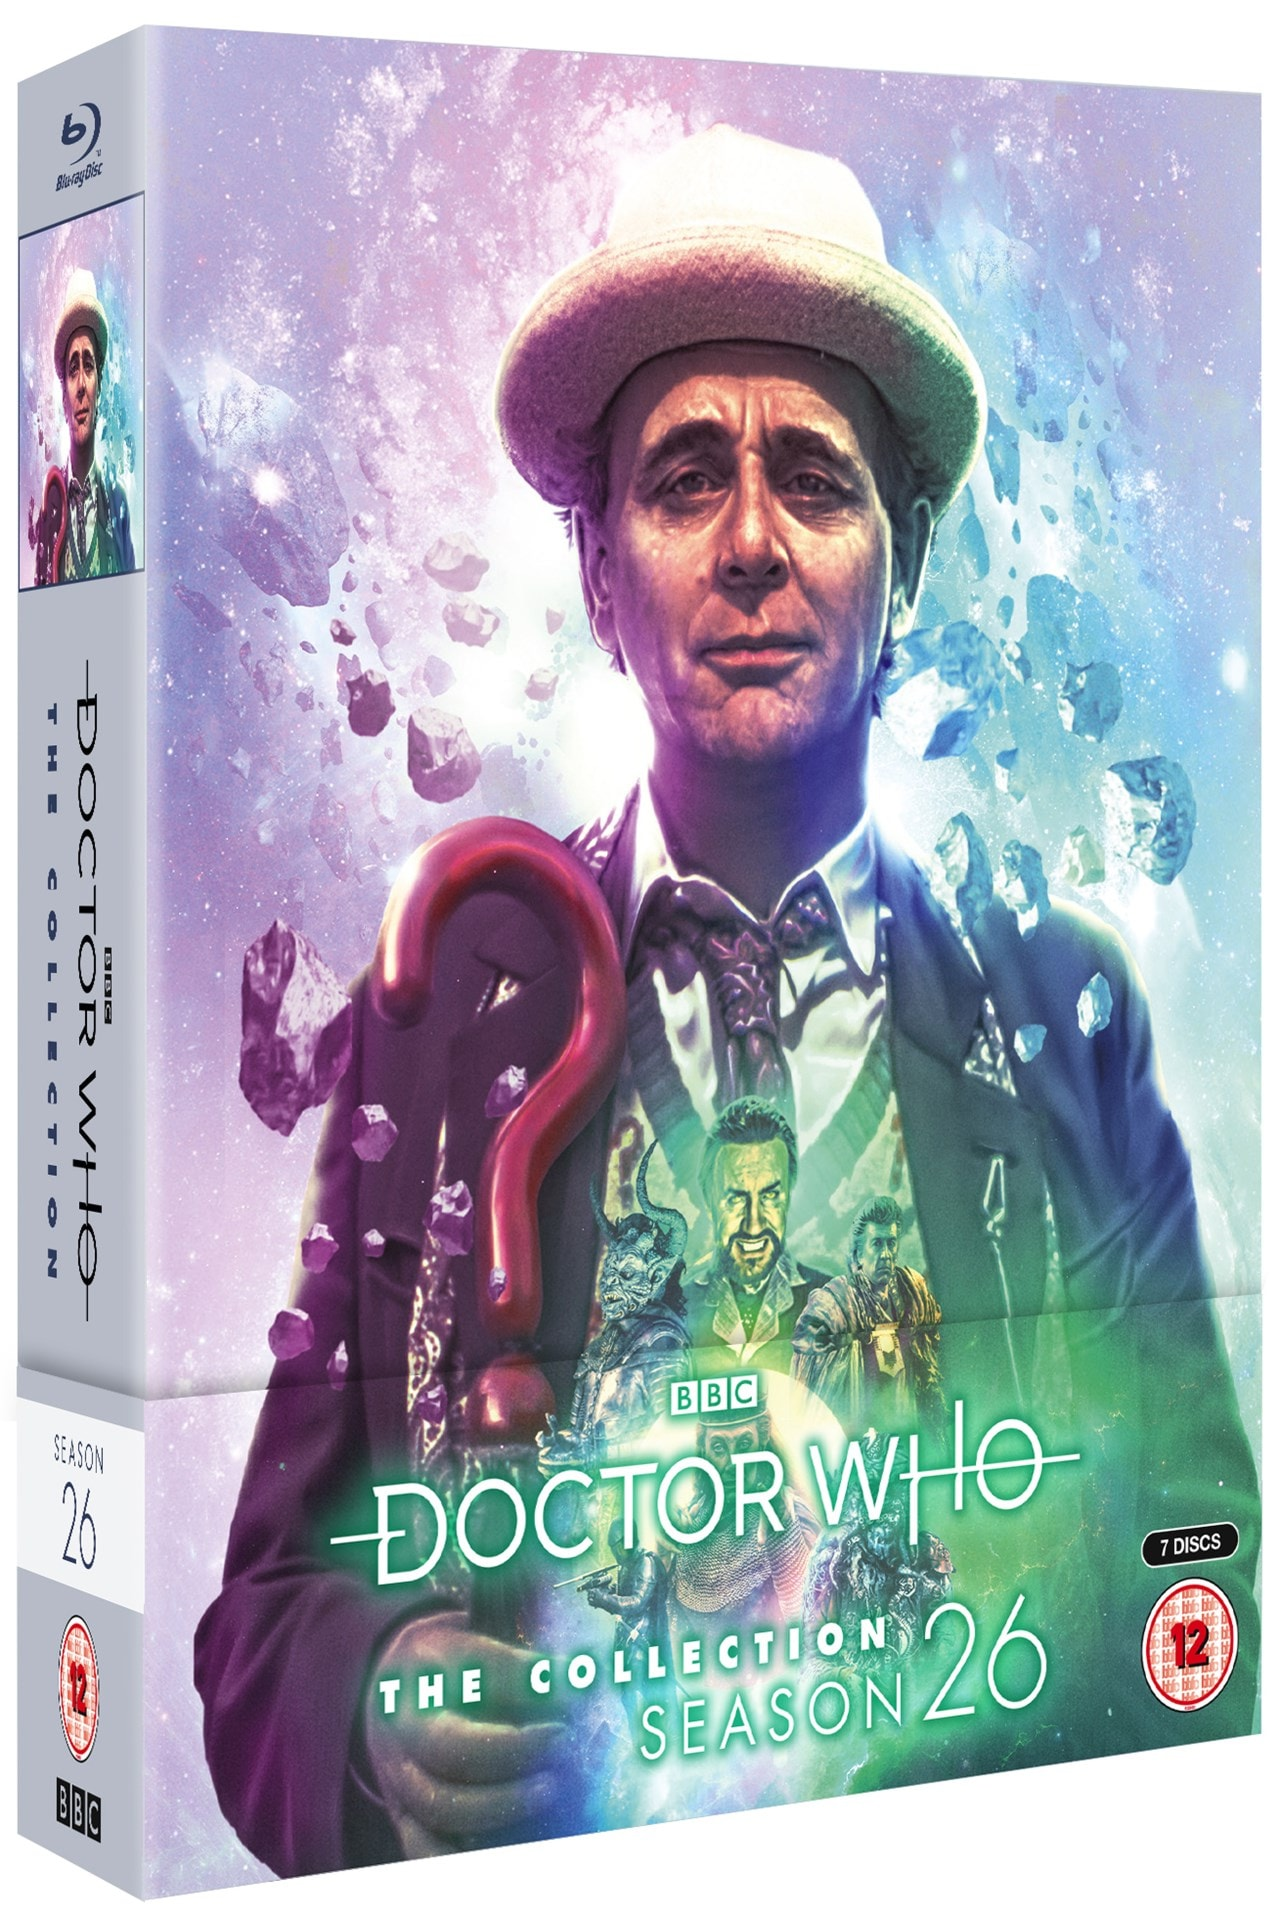 Doctor Who: The Collection - Season 26 Limited Edition Box Set - 2